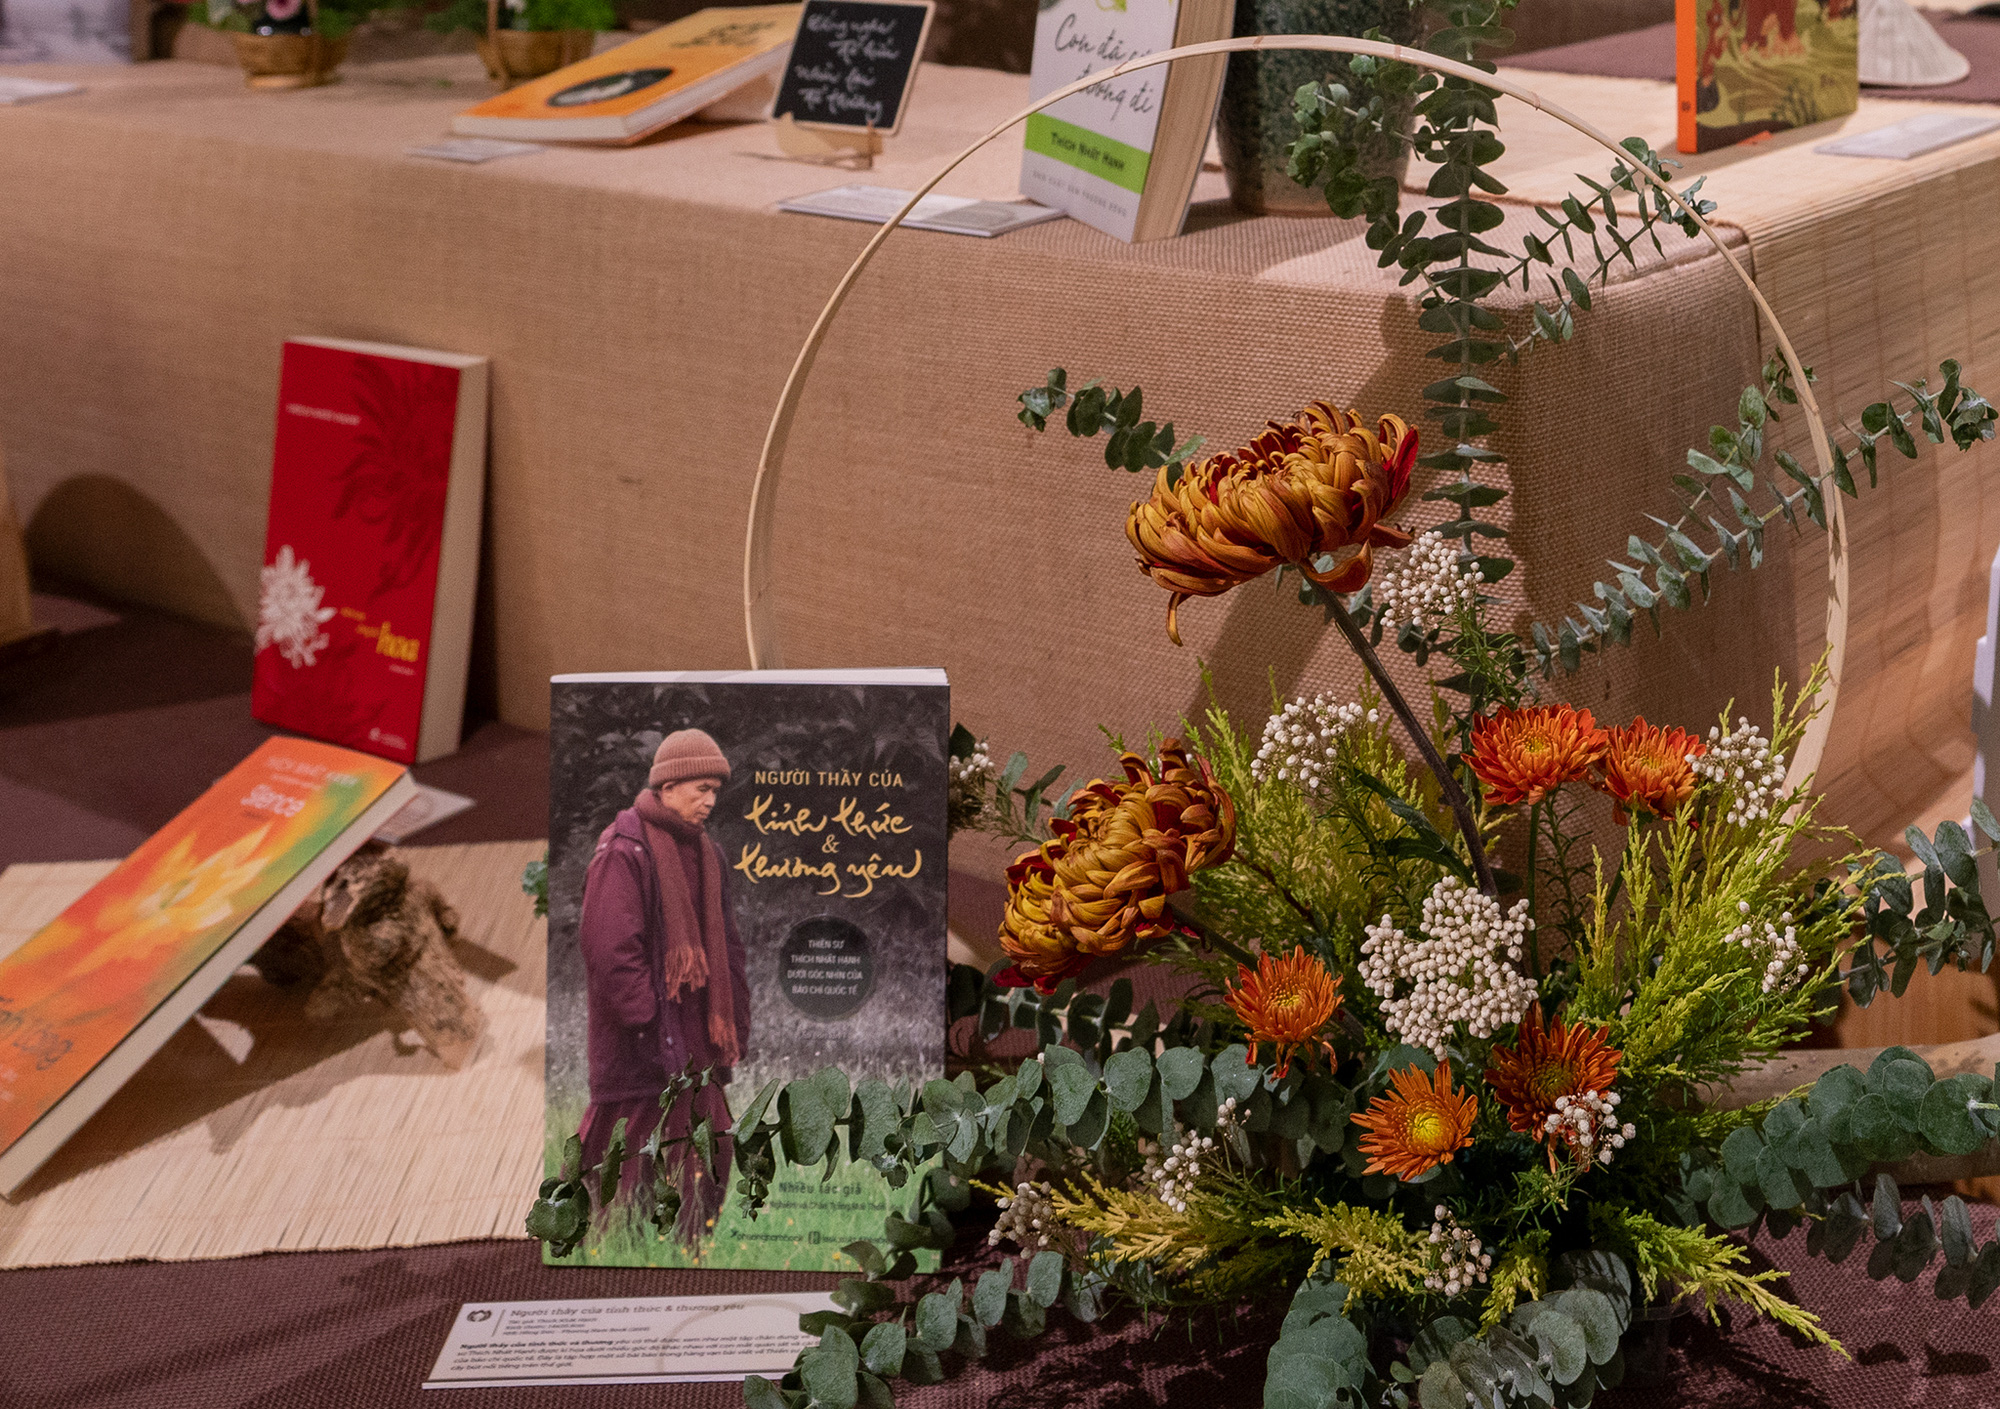 Books by Zen Buddhist monk Thich Nhat Hanh are on display in Ho Chi Minh City, Vietnam, March 27, 2021. Photo: Huu Hanh / Tuoi Tre